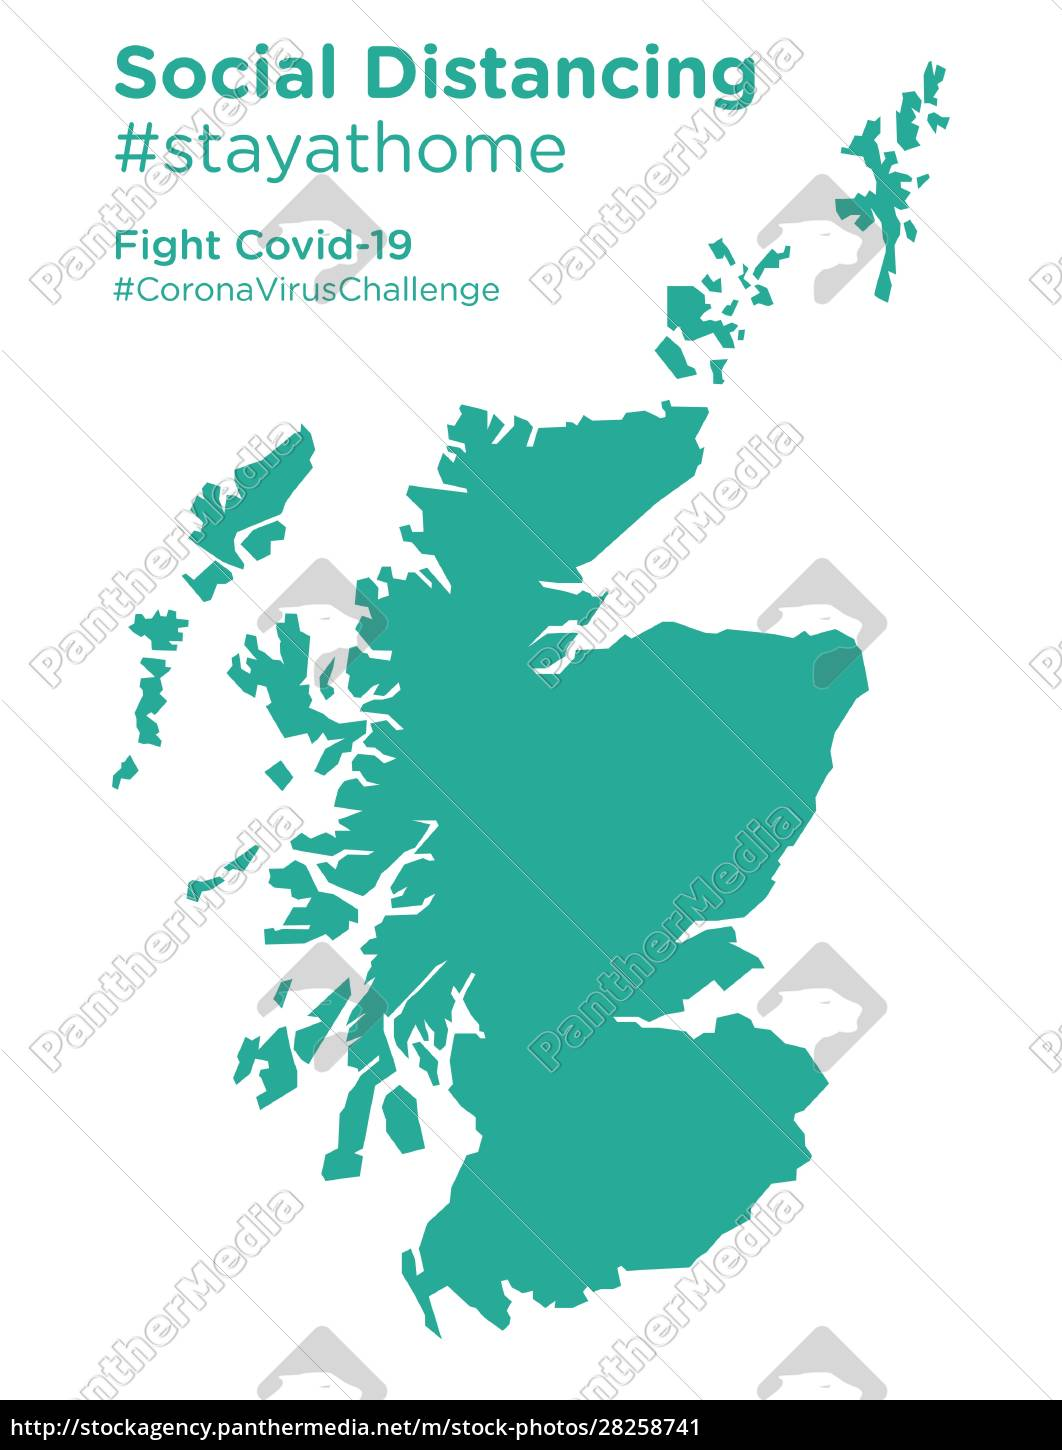 scotland, map, with, social, distancing, stayathome - 28258741